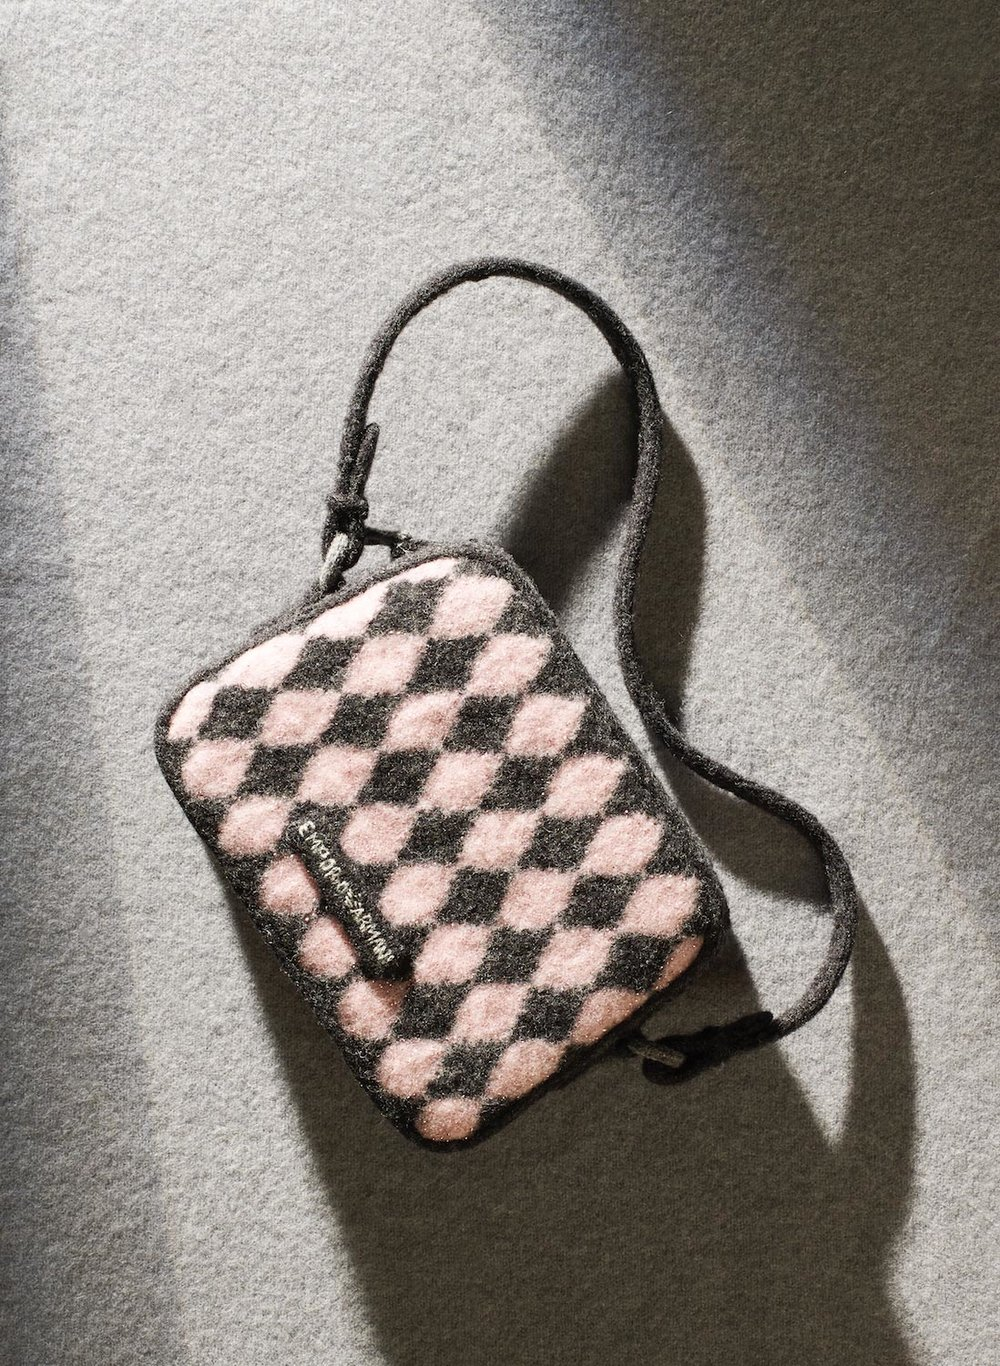 077_Still_Life_Product_Photographer_Dennis_Pedersen_Knitted_Fashion_Handbag_Emporio Armarni_Advertising_Editorial_Creative_.jpg